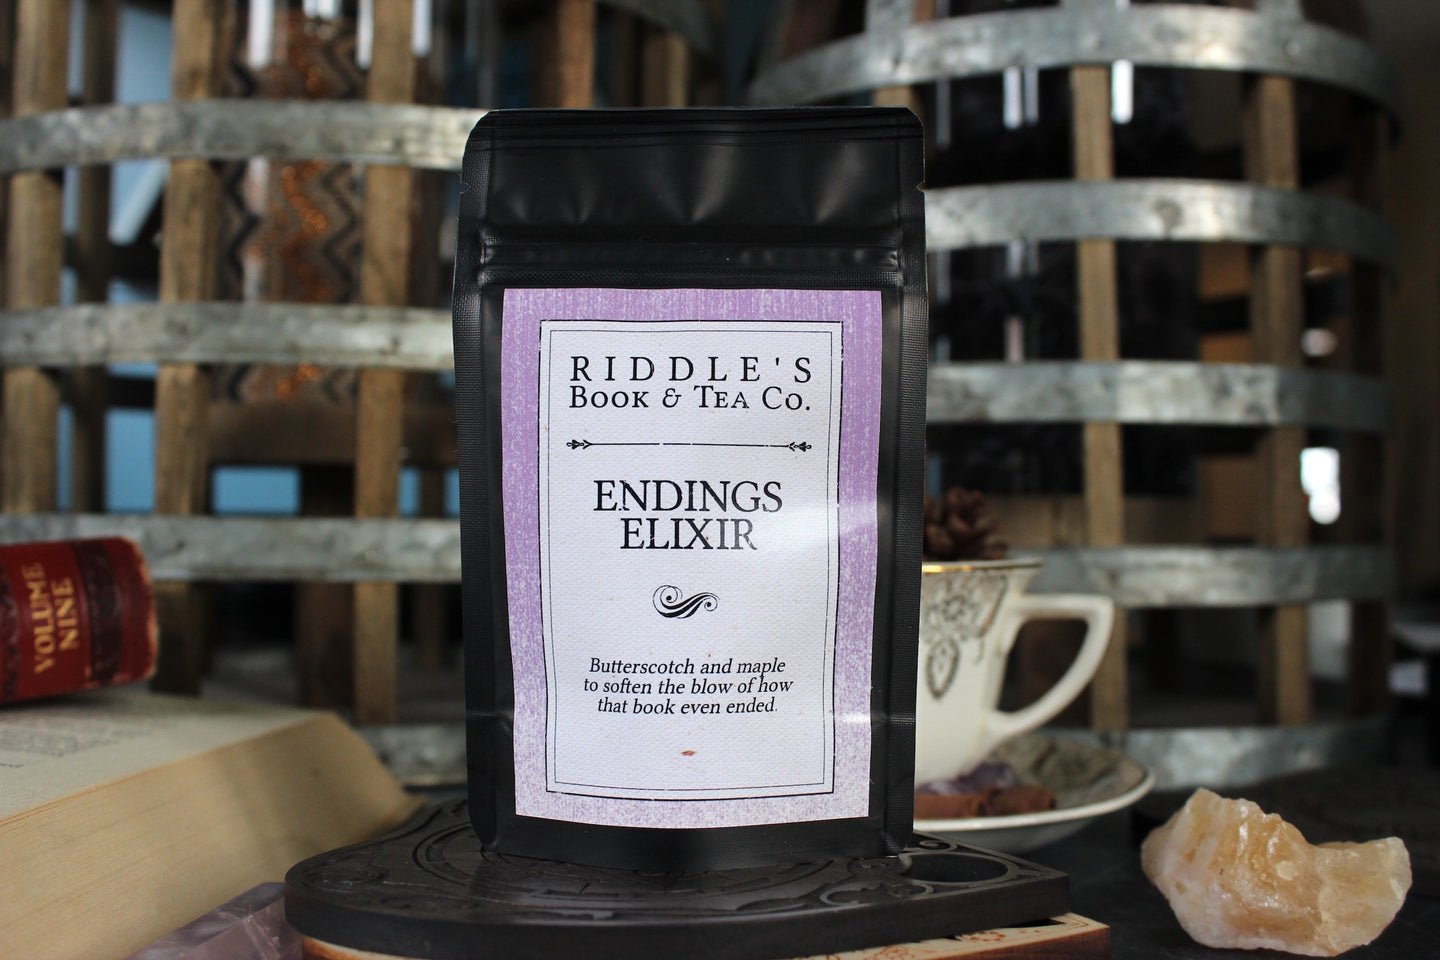 Endings Elixir Tea Sample